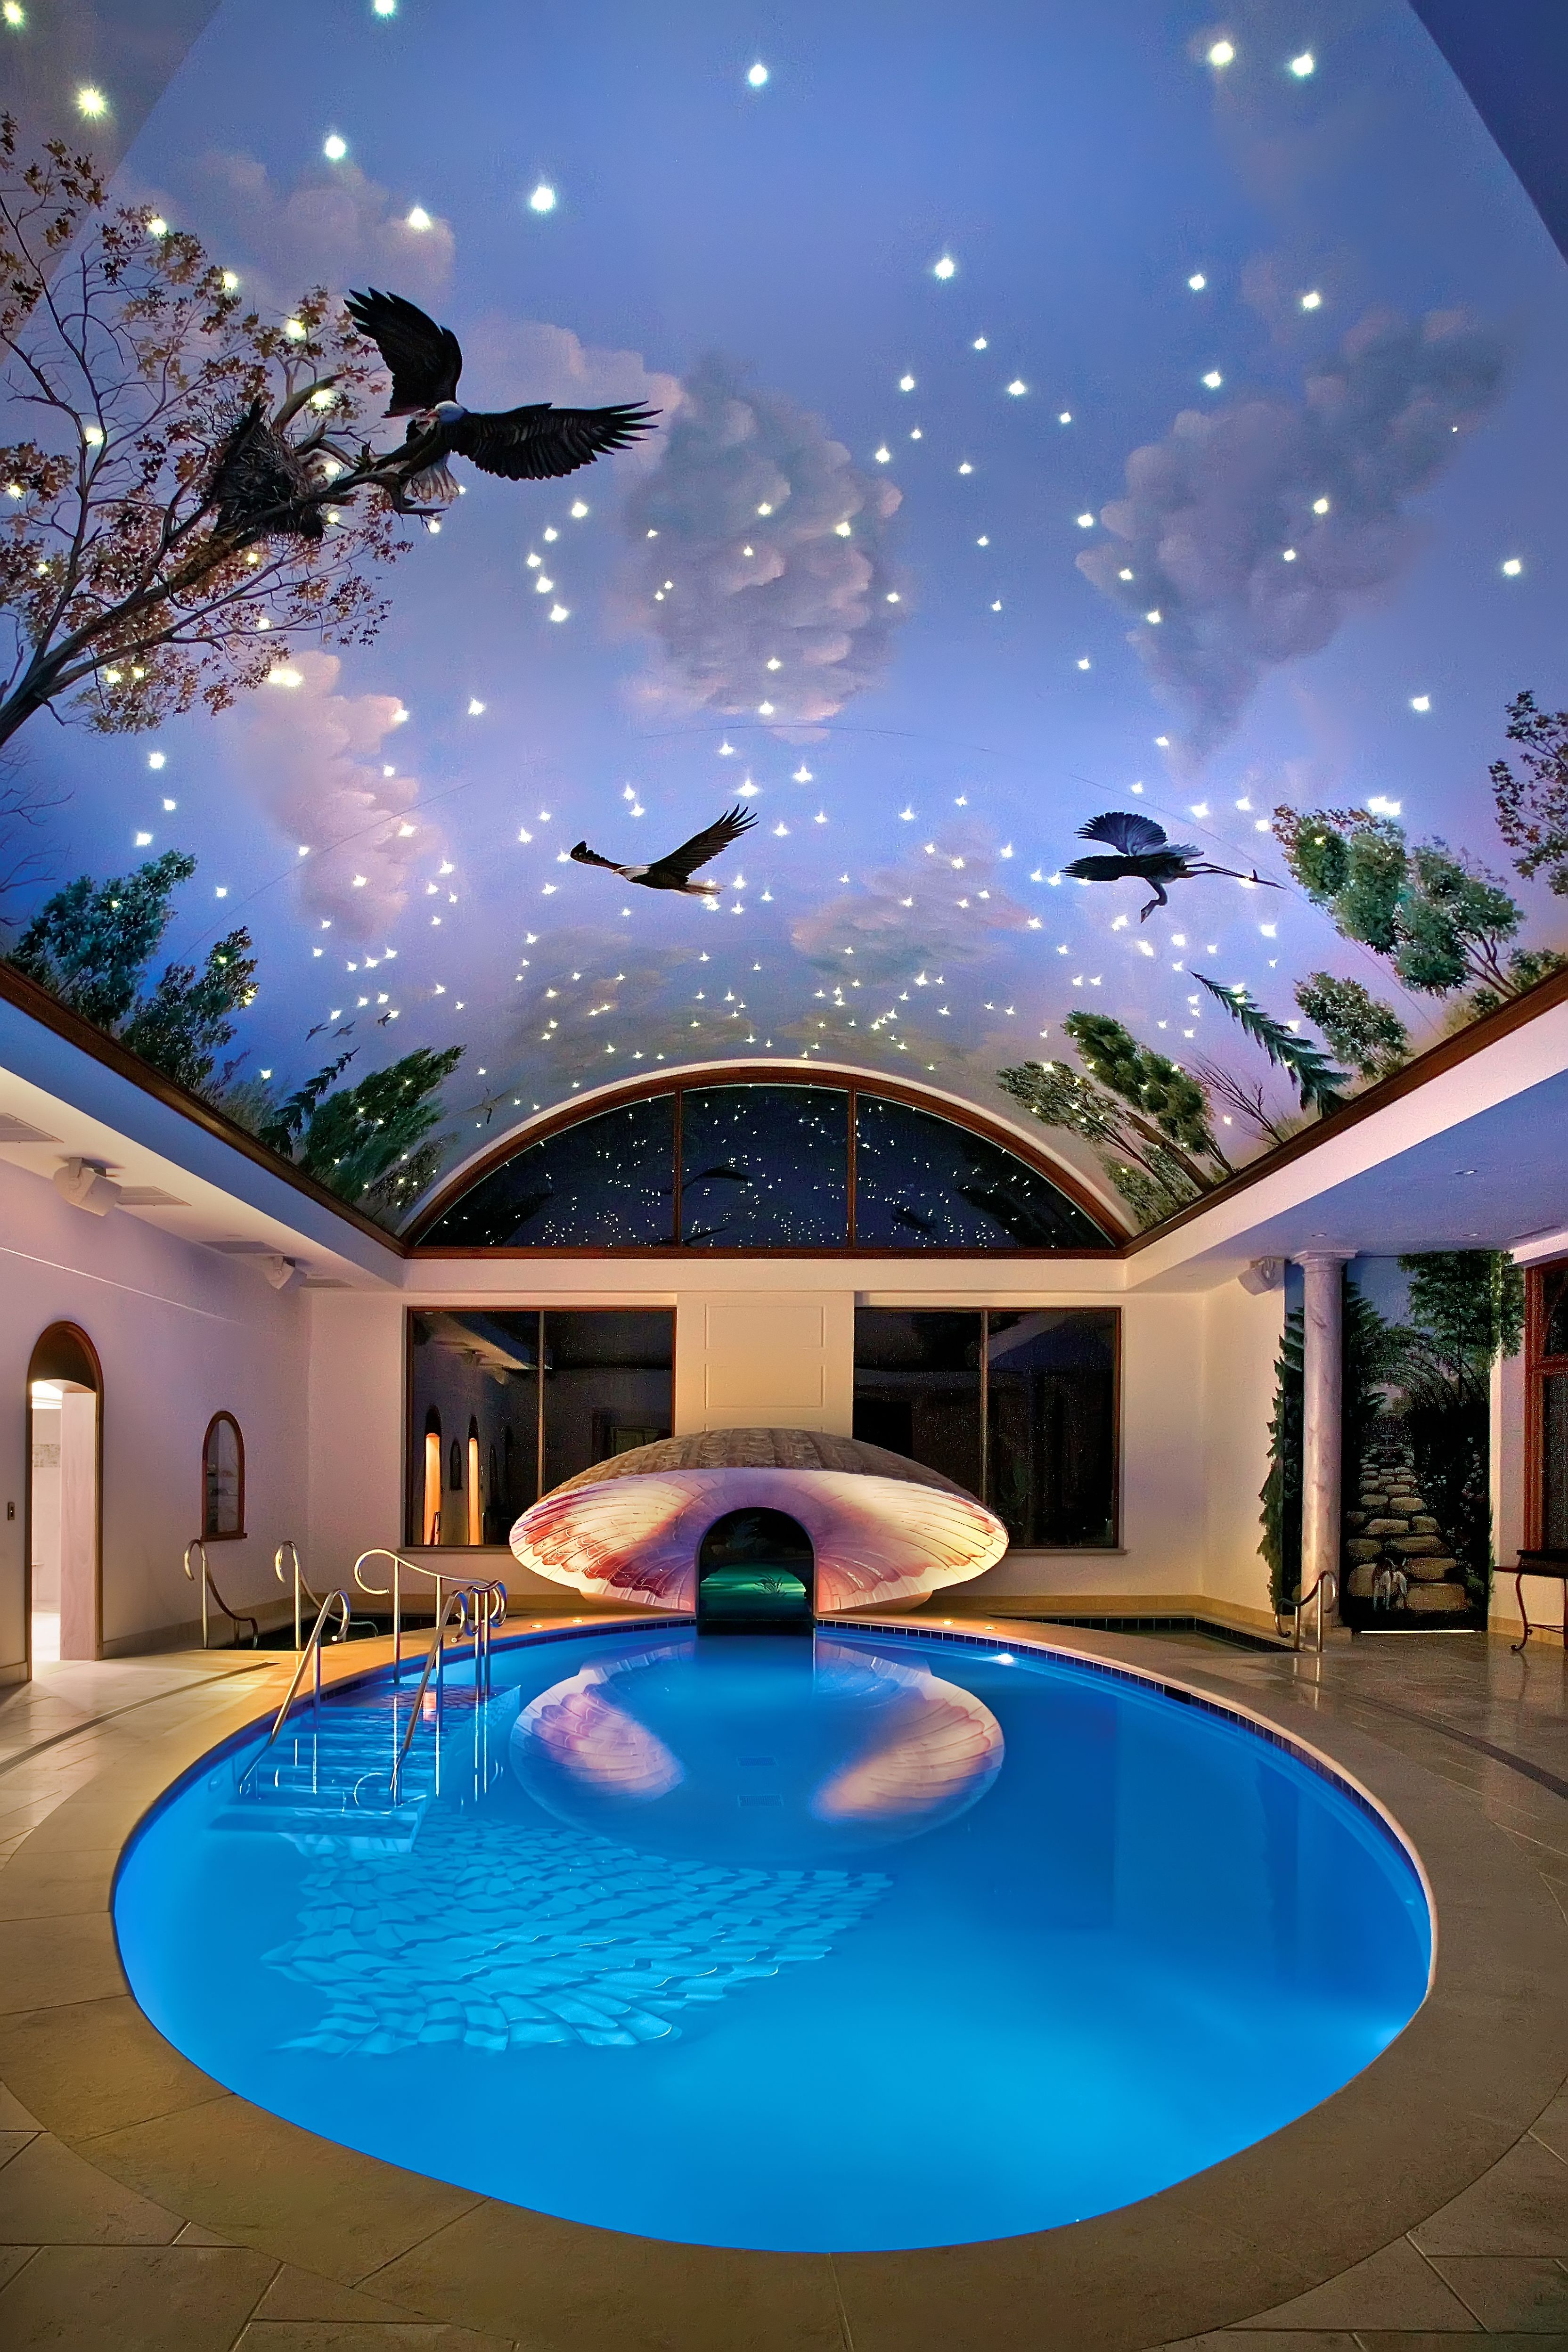 Fantasy Indoor Swimming Pool With Sky Mural